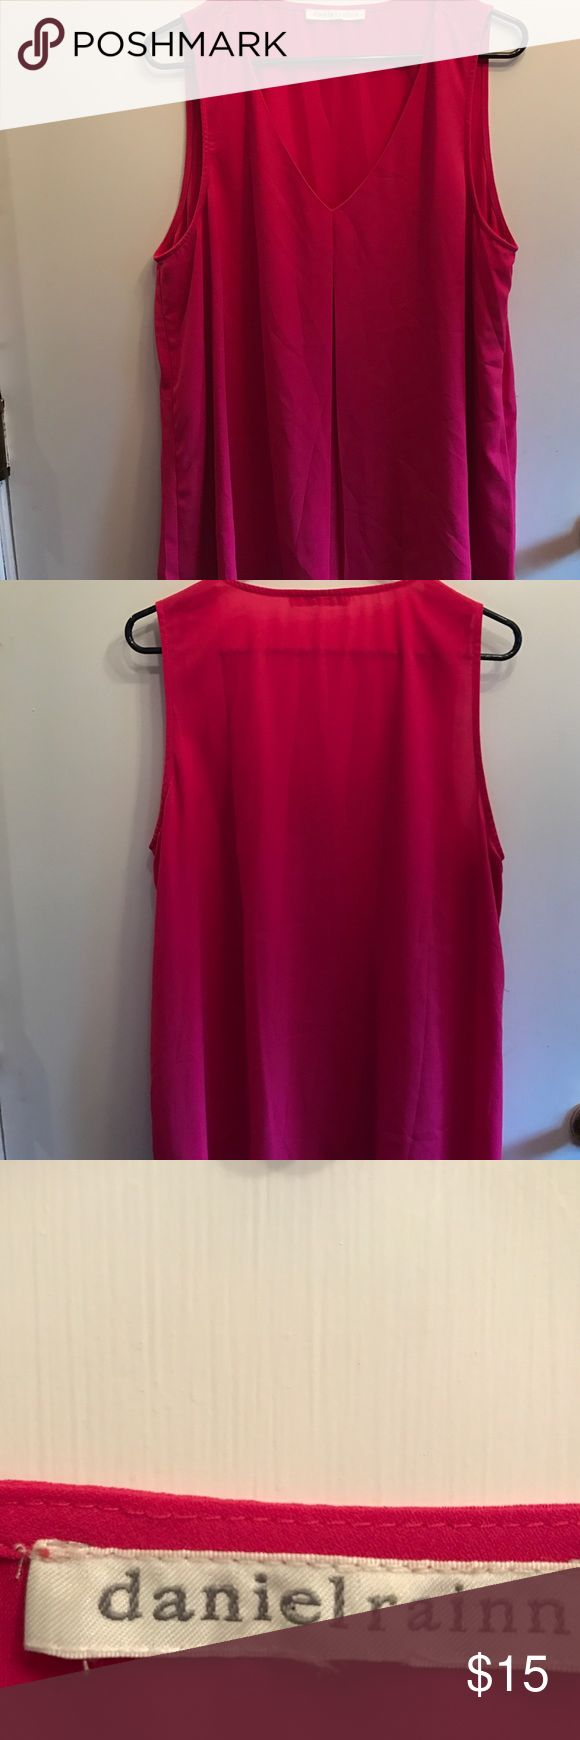 Daniel Rainn XL fuchsia hot pink short sleeve top. Daniel Rainn XL fuchsia hot pink short sleeve top. Inverted pleat in front. Can be worn with shorts, jeans, skirt or as a shell under a suit. Loose fitting, perfect for spring & summer days! Polyester blend. In Perfect condition. No trades. Daniel Rainn Tops Blouses